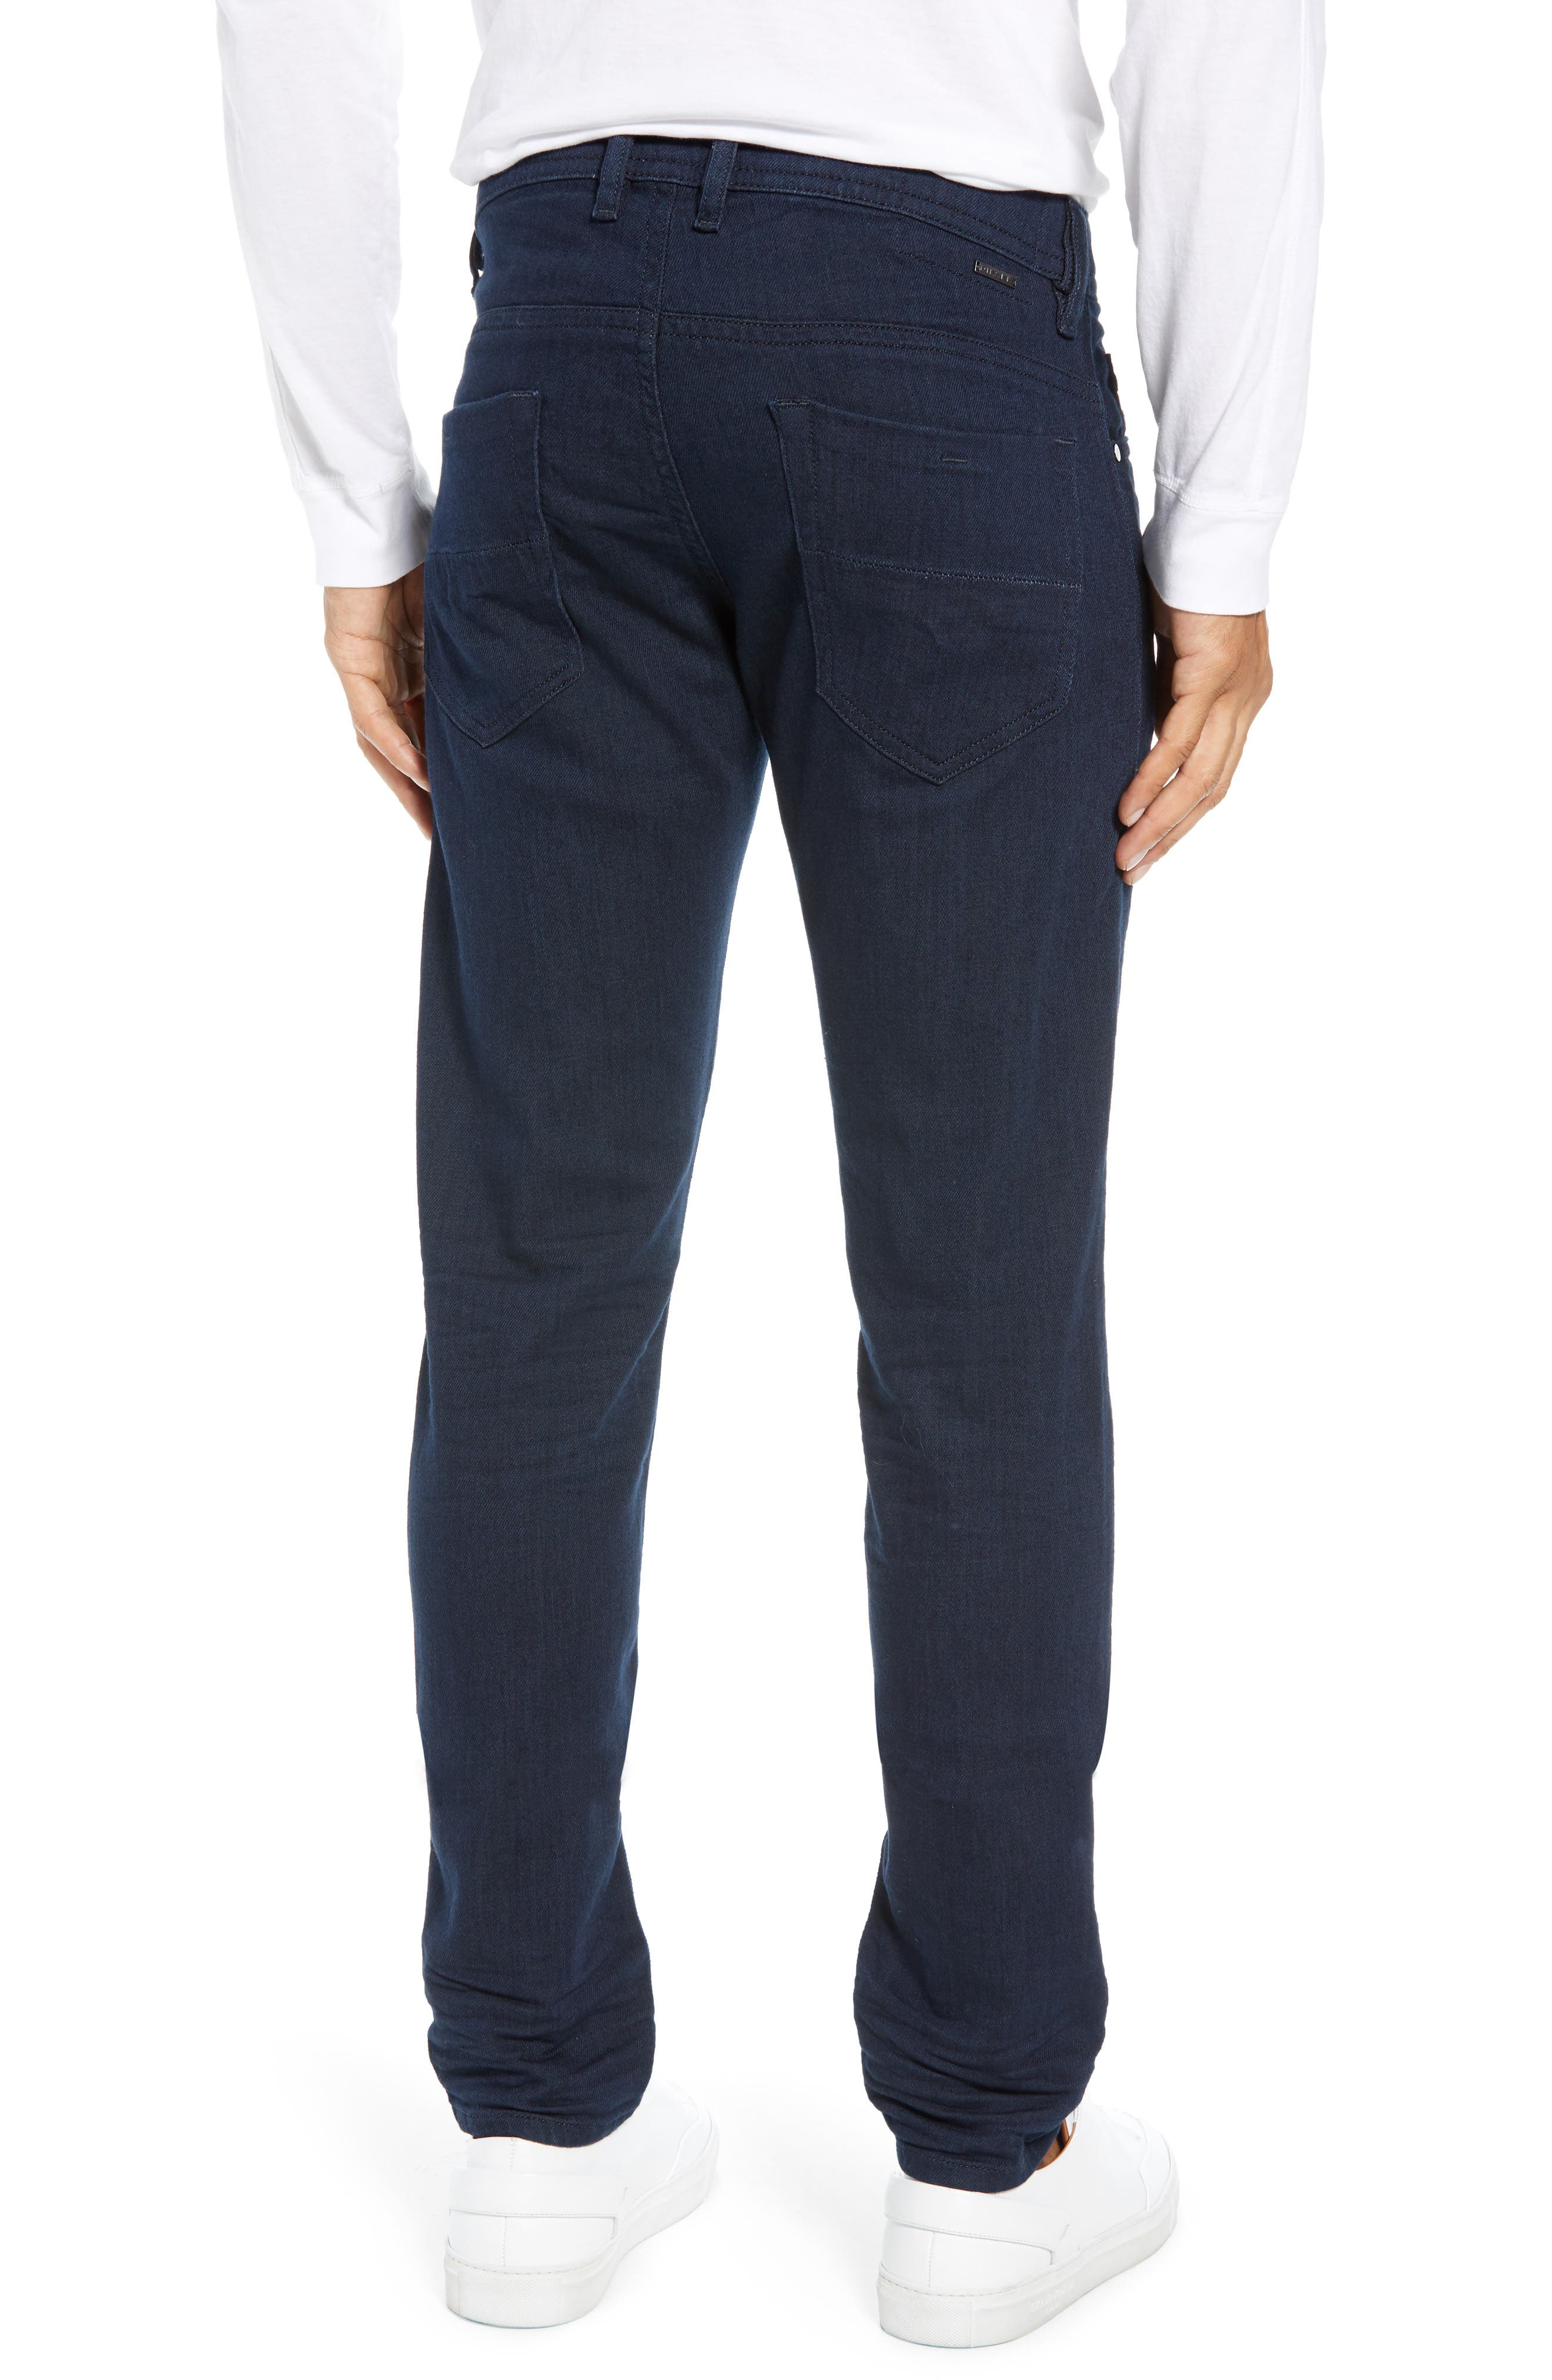 Thommer Skinny Fit Jeans,                             Alternate thumbnail 2, color,                             400